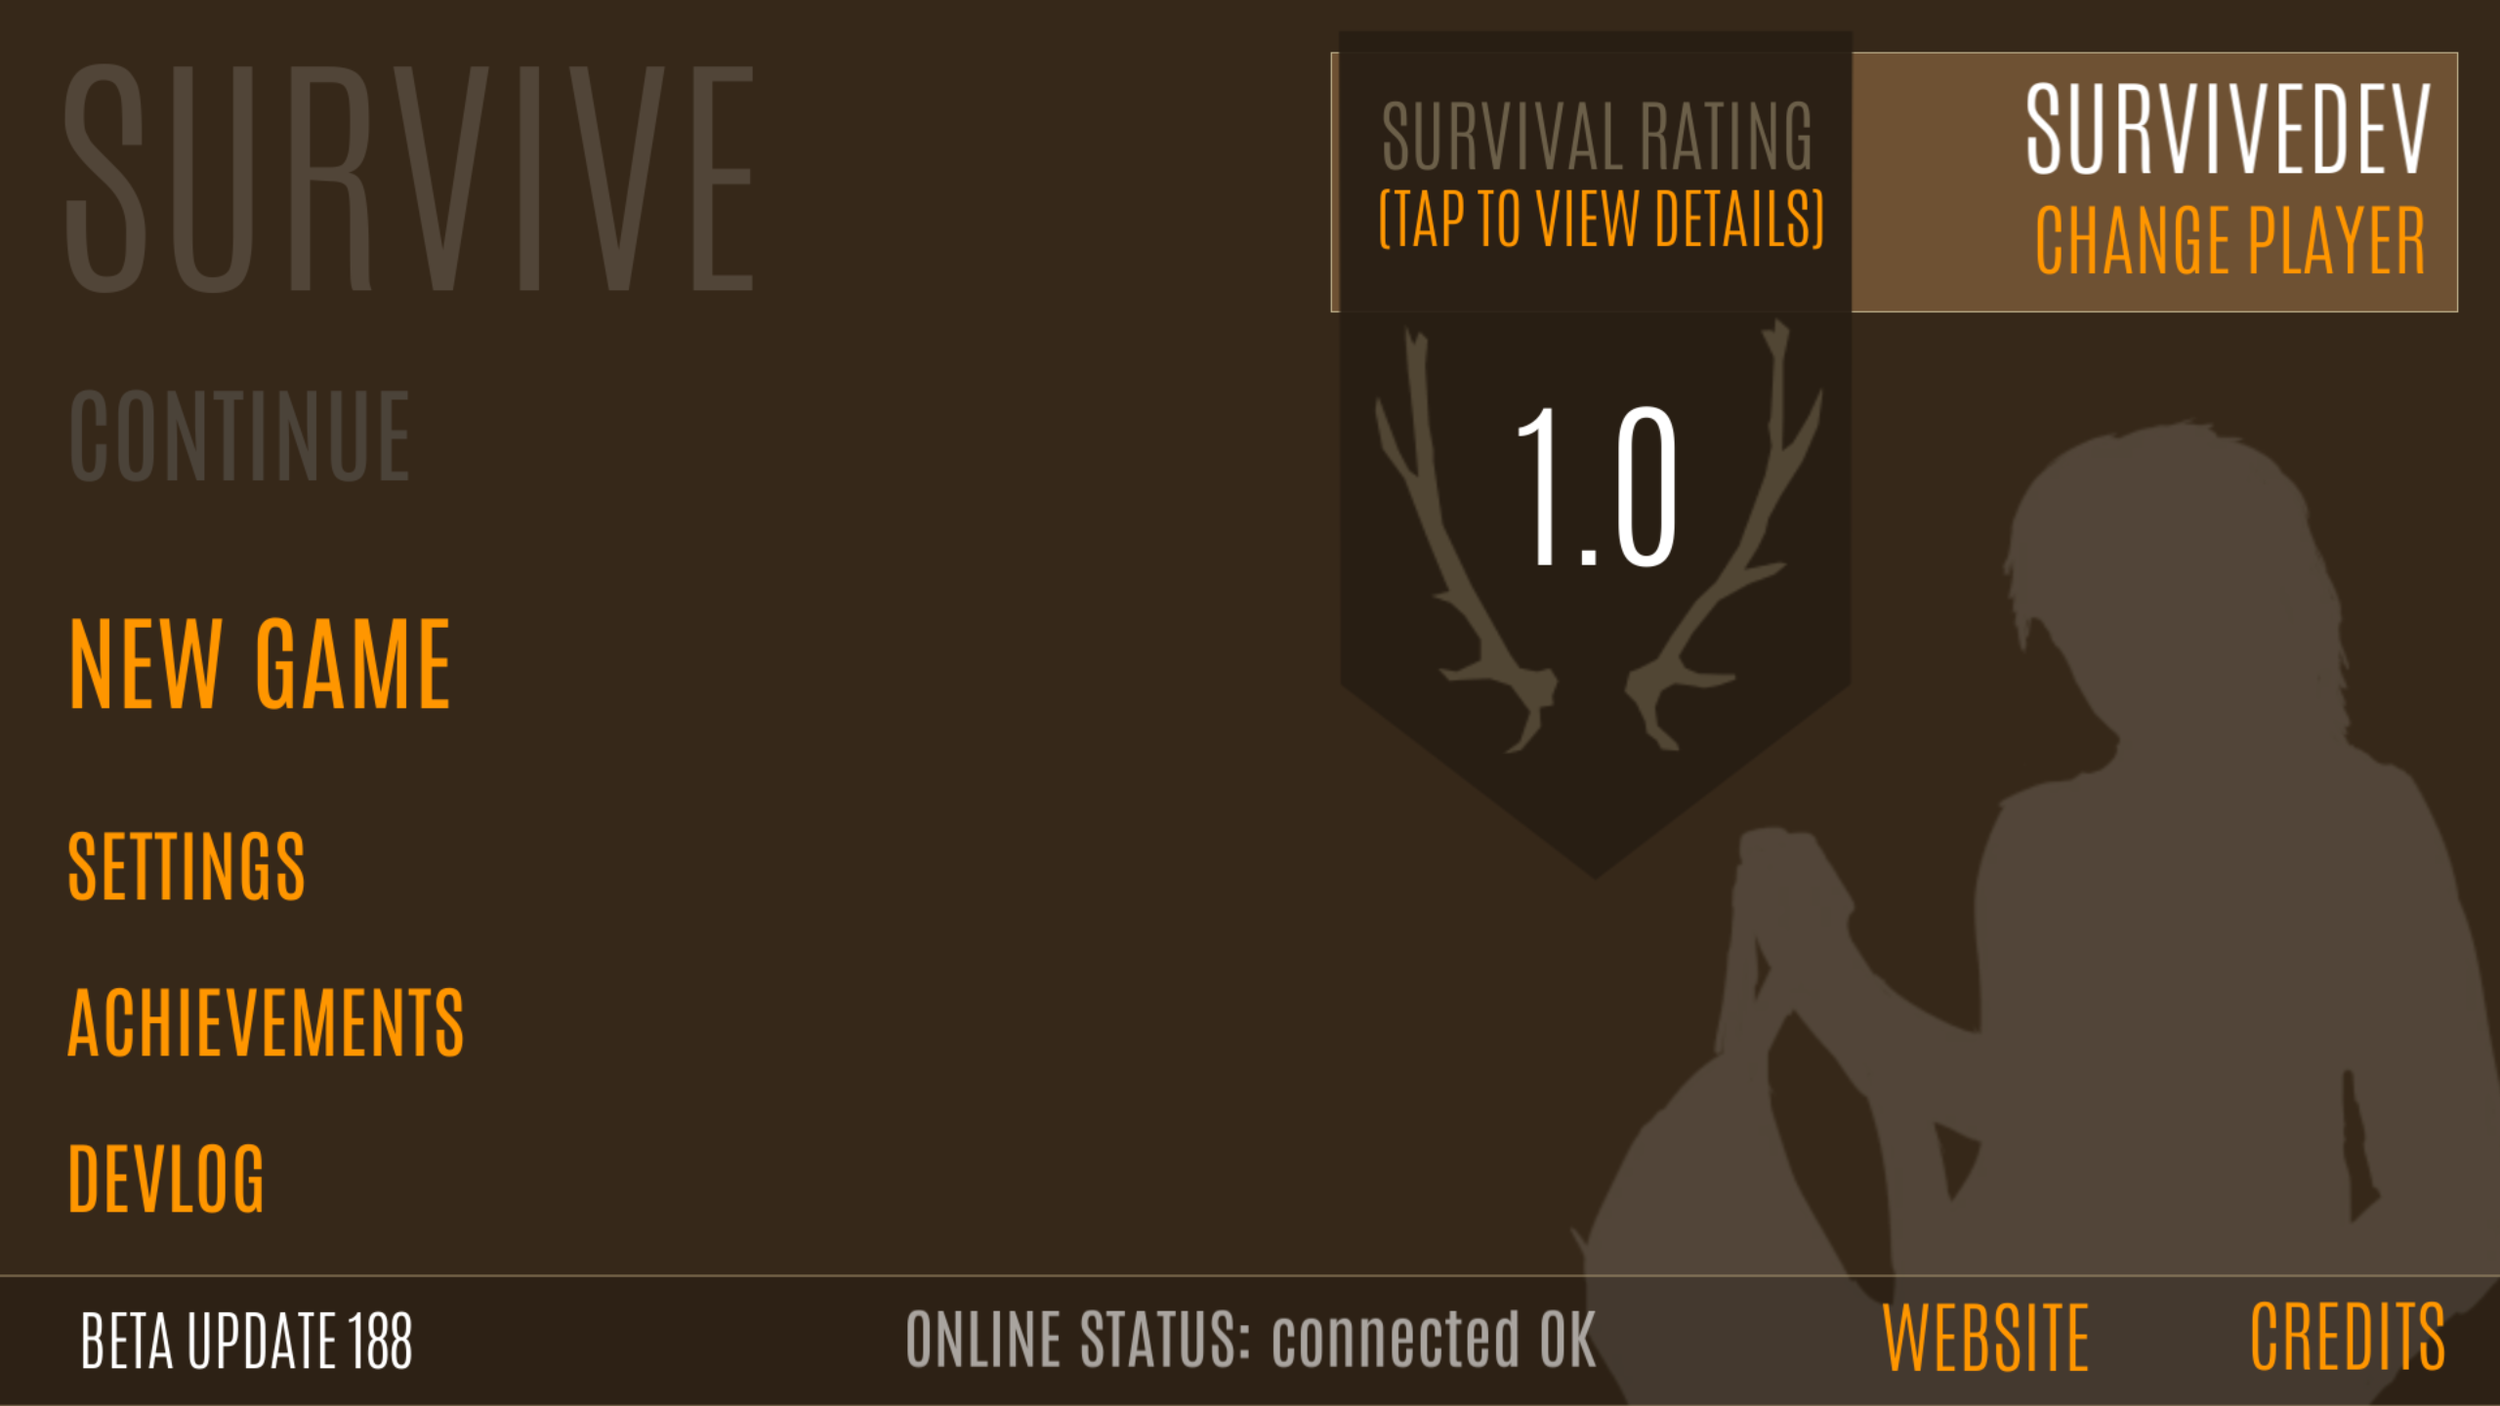 Play as male or female character. Version 188 introduces experimental survival rating.